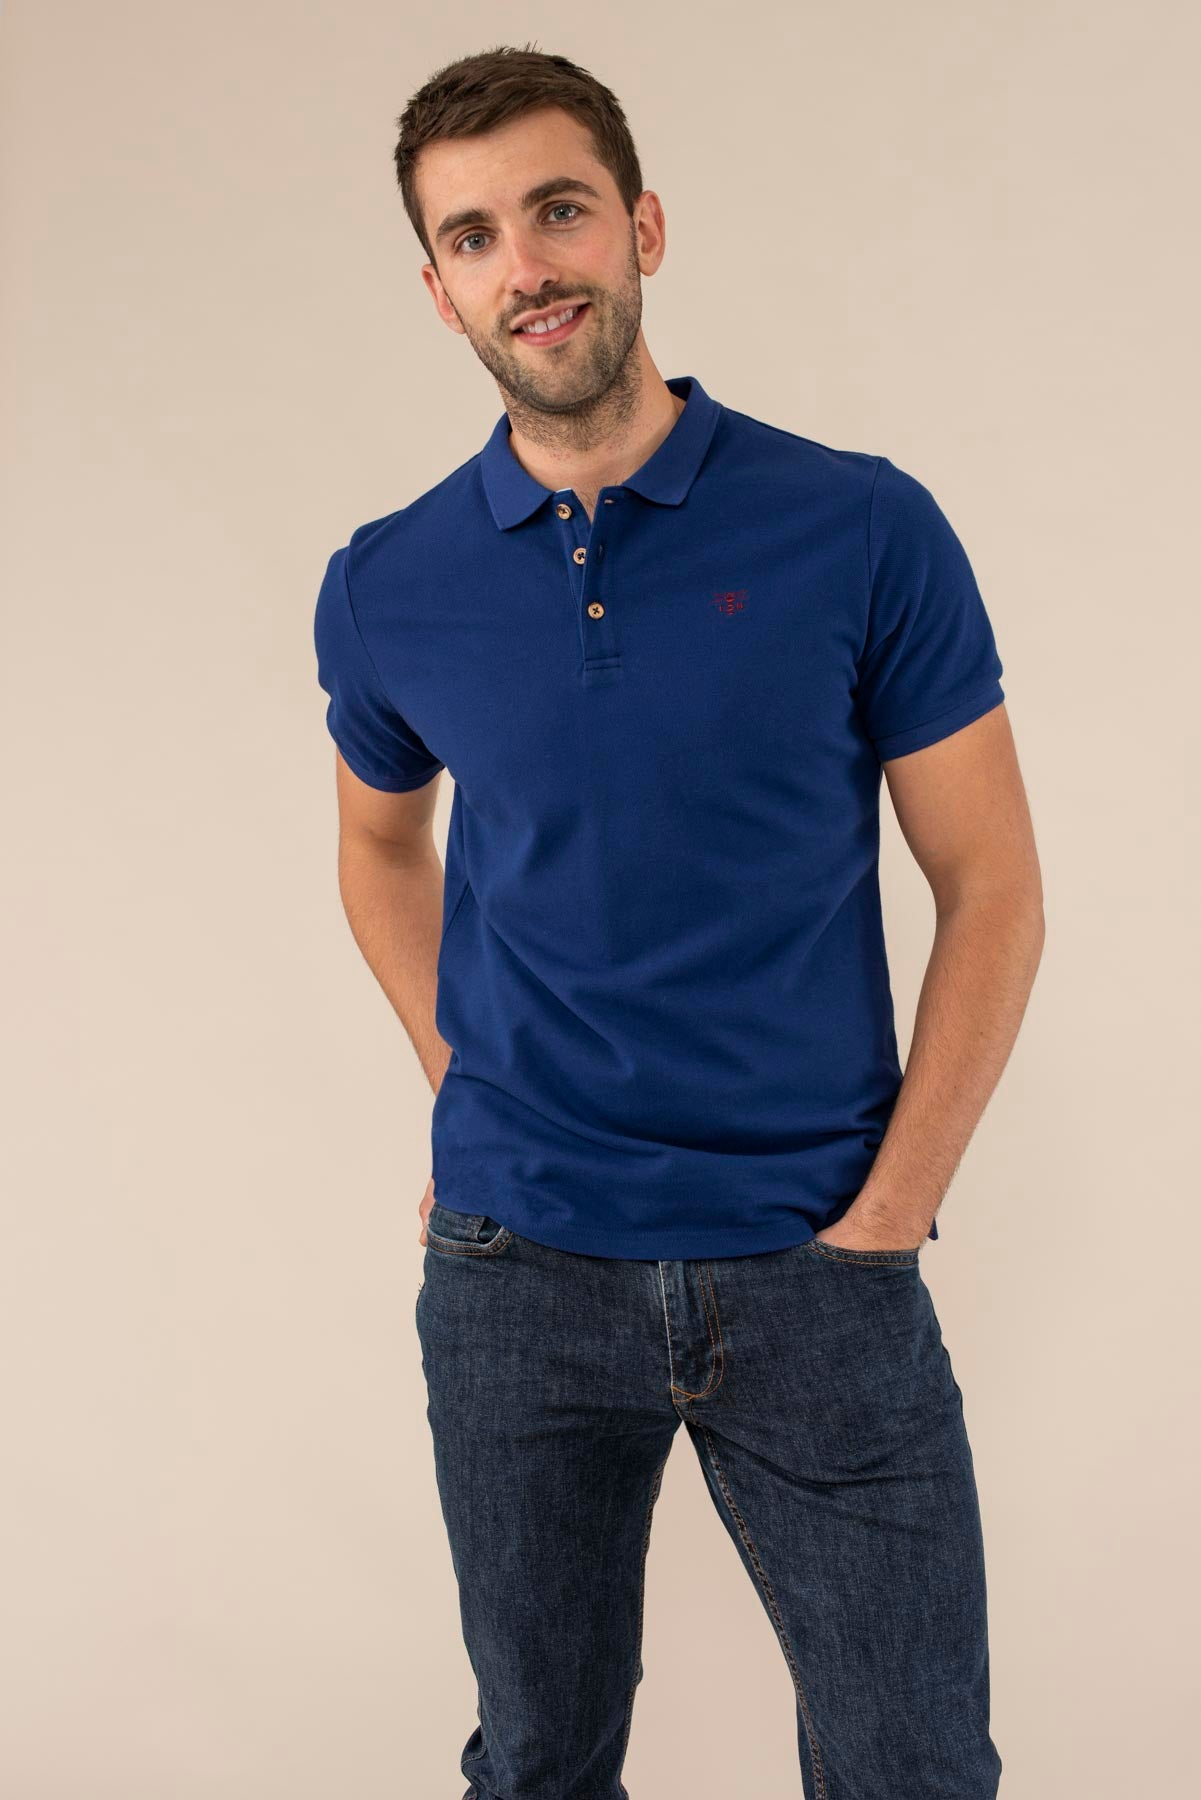 Lighthouse Pier Polo - Men's Classic Polo Shirt - Blue